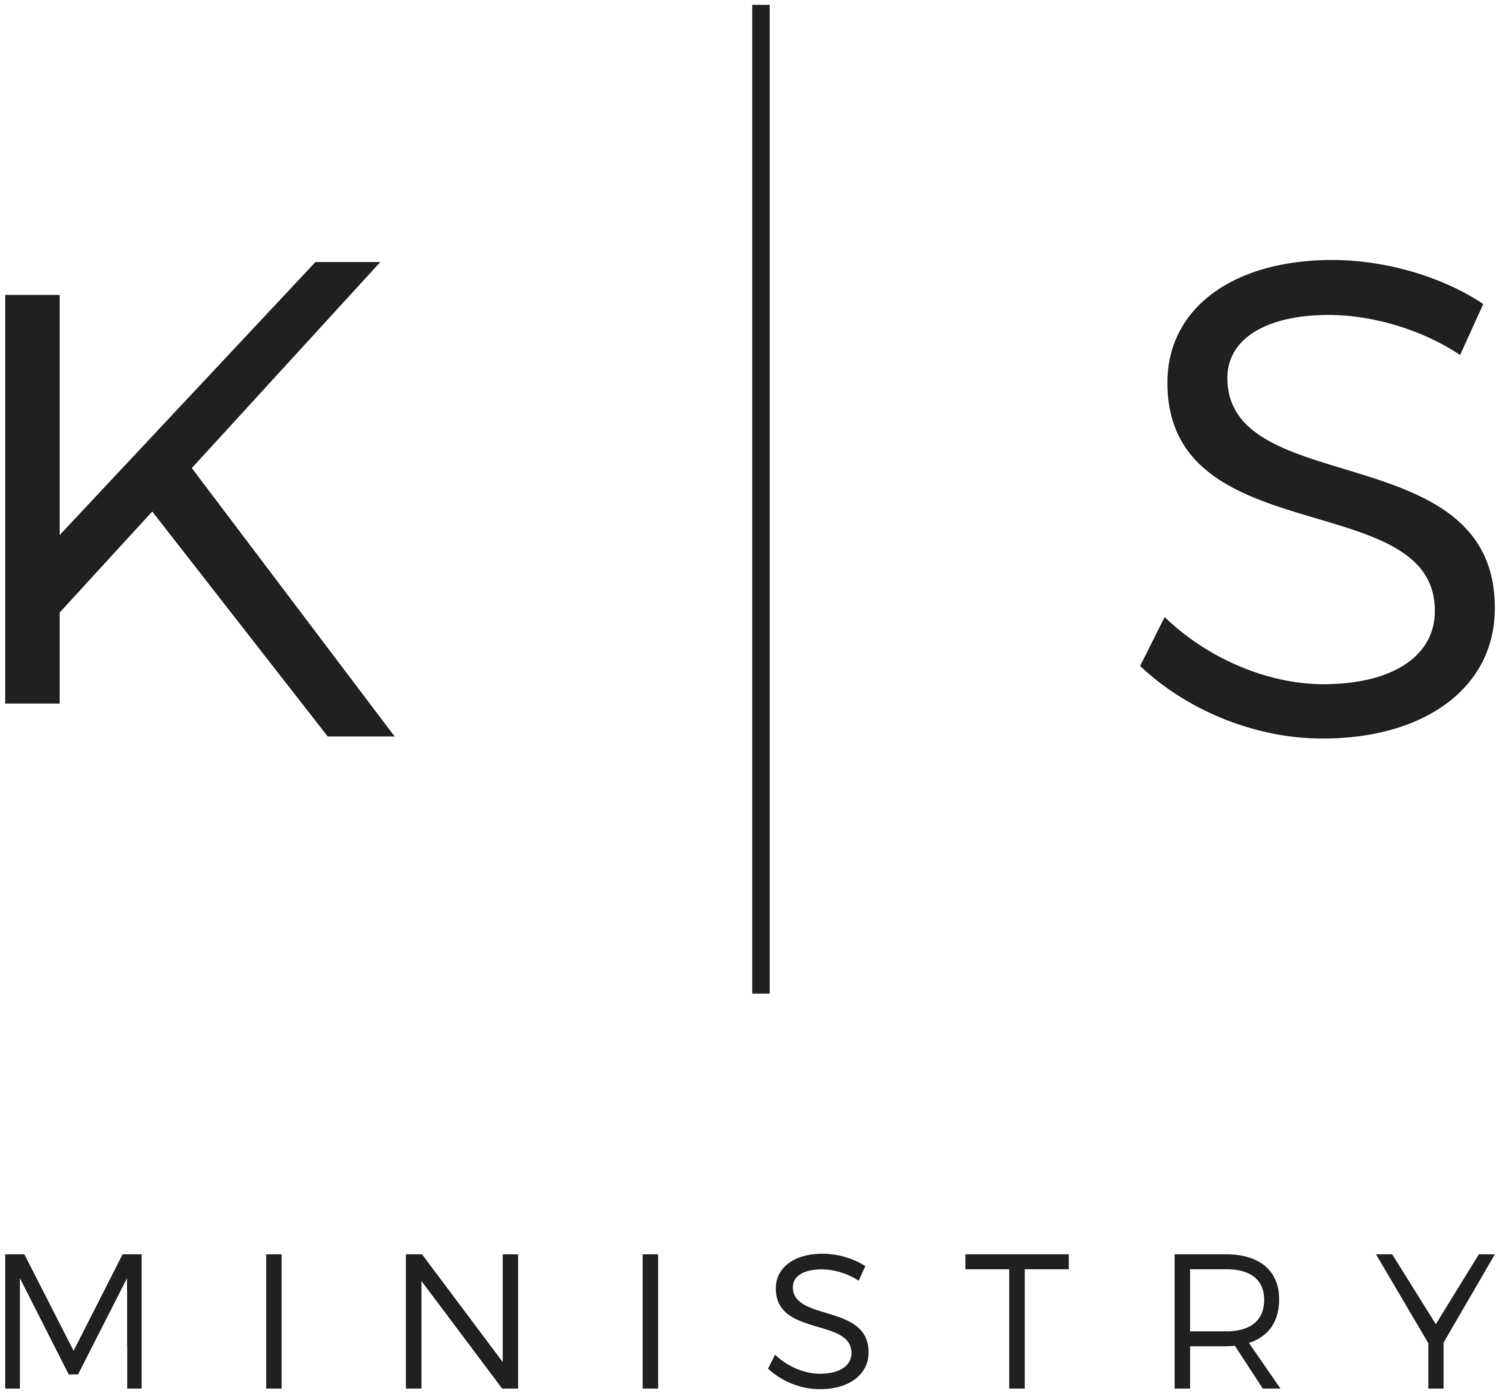 The Middle East Ks Ministry